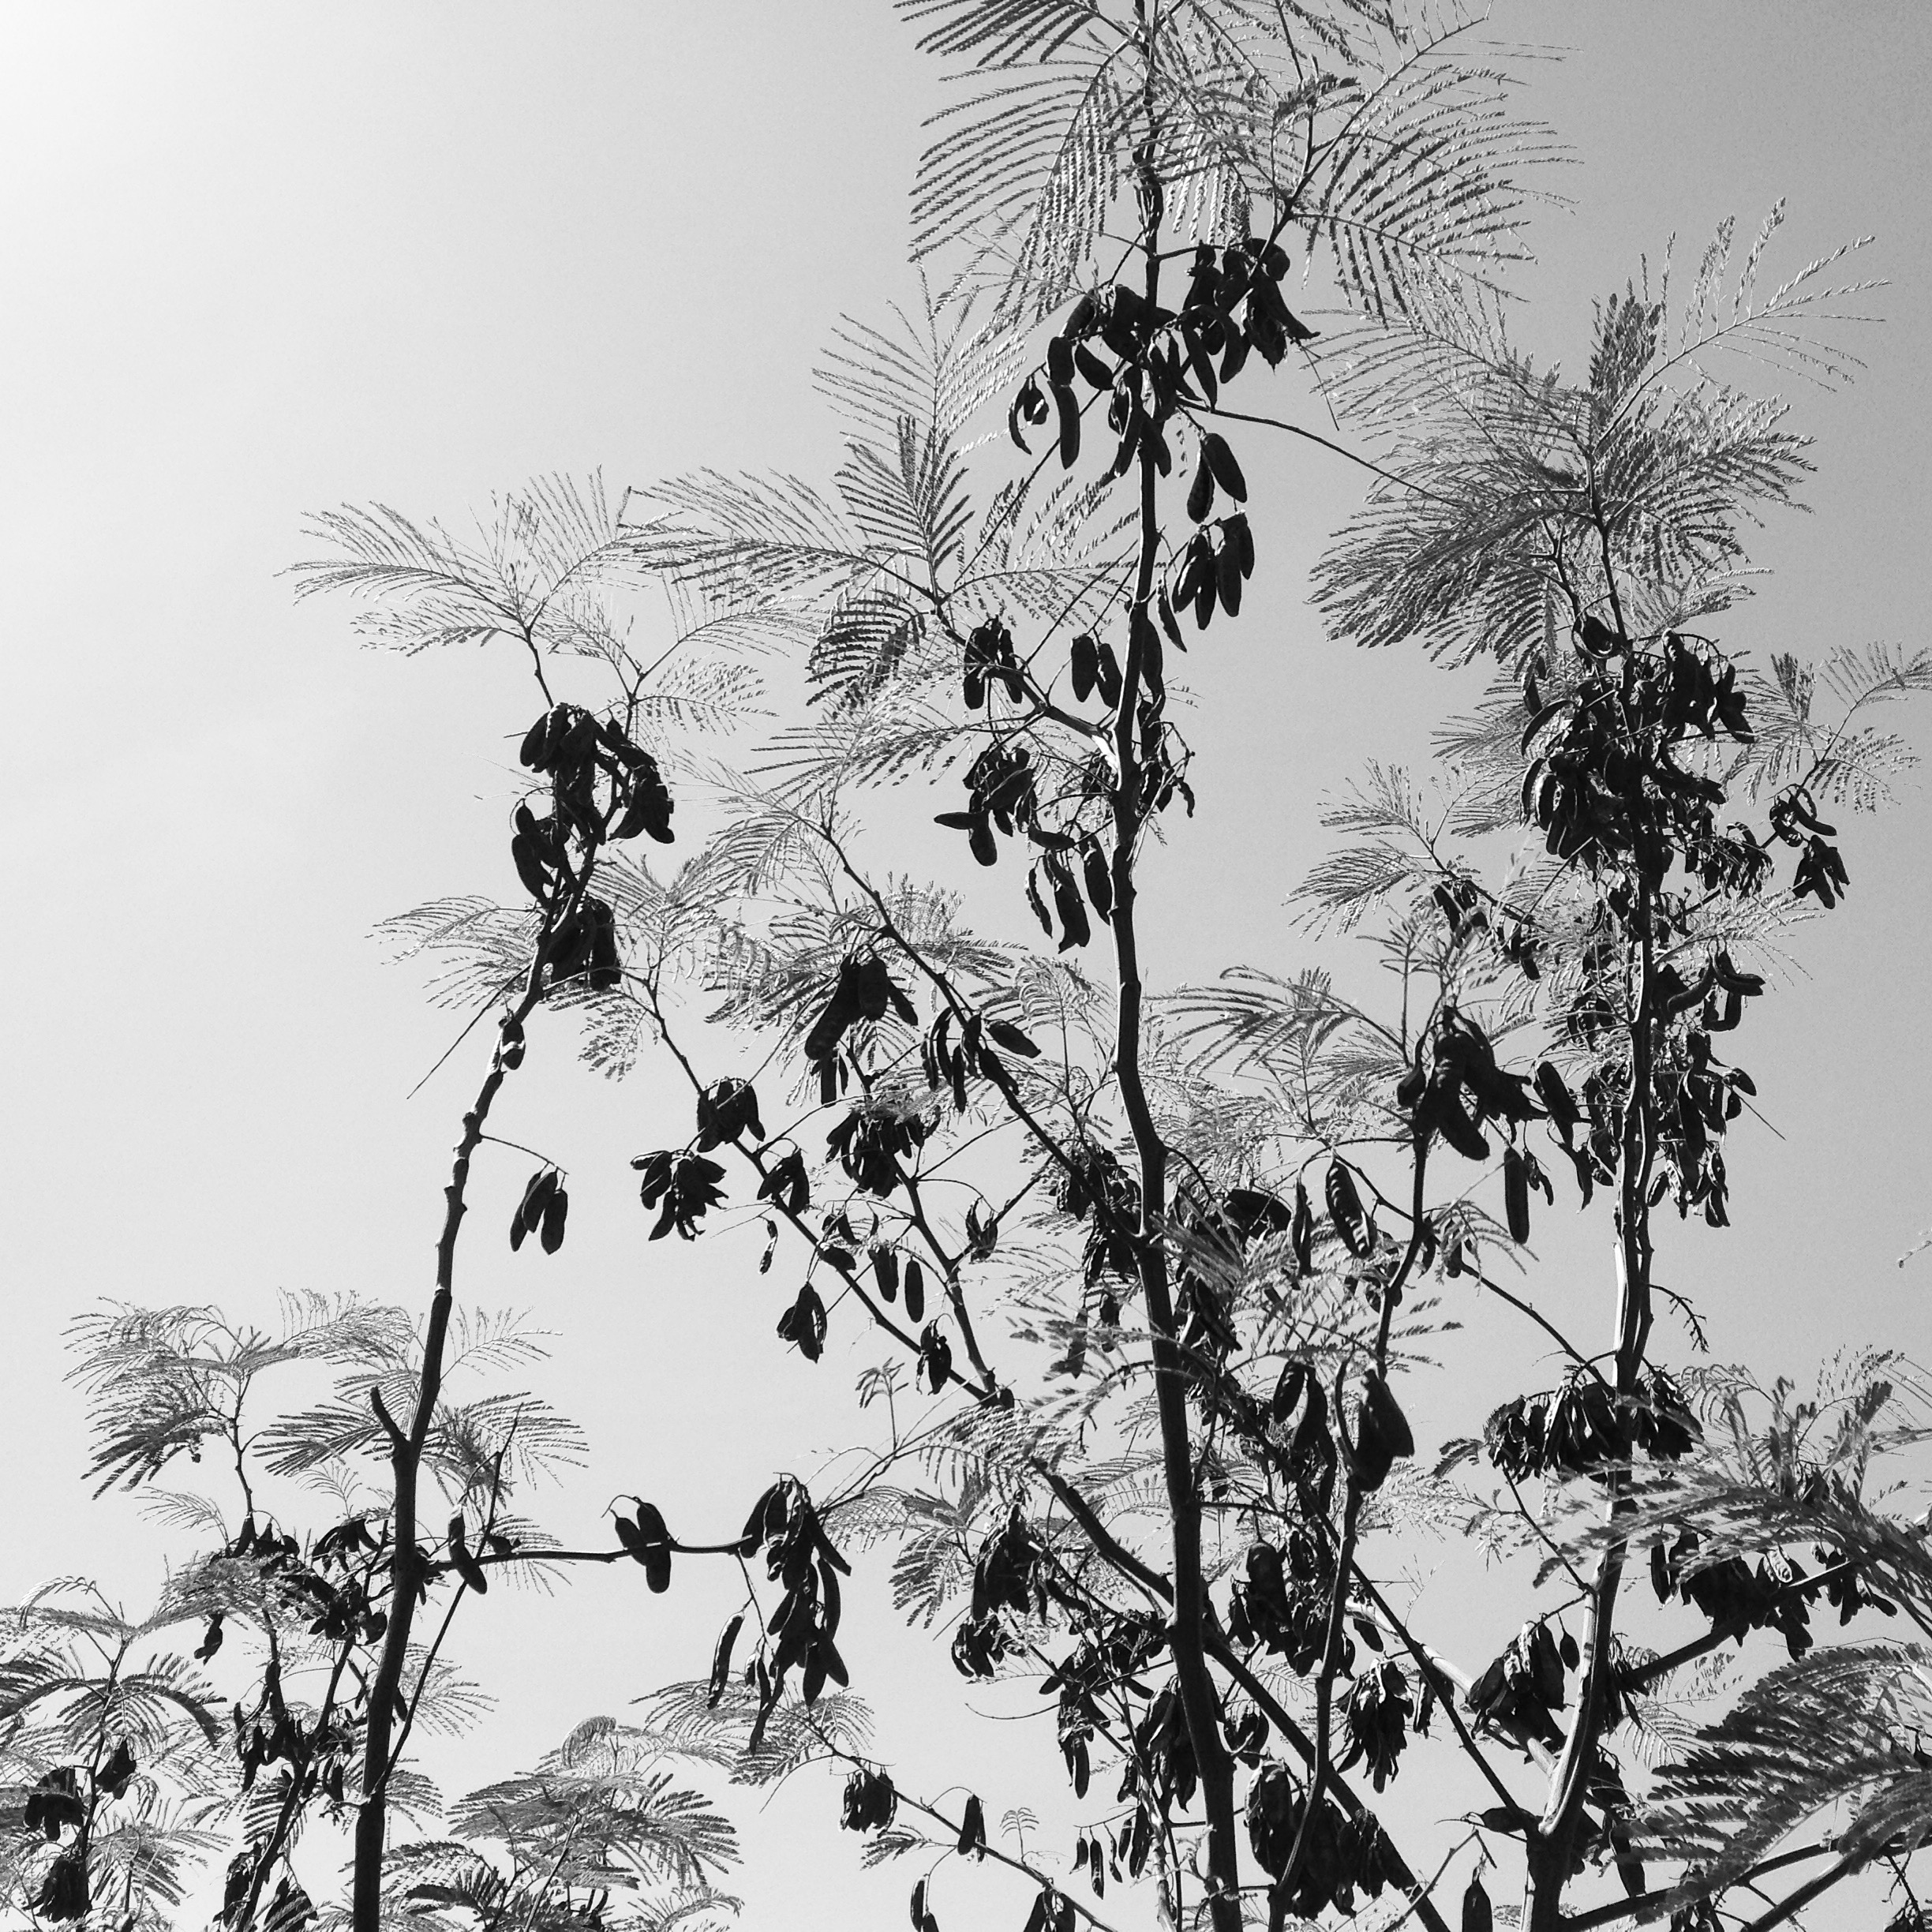 Silhouette of branches and leaves against clear skies.